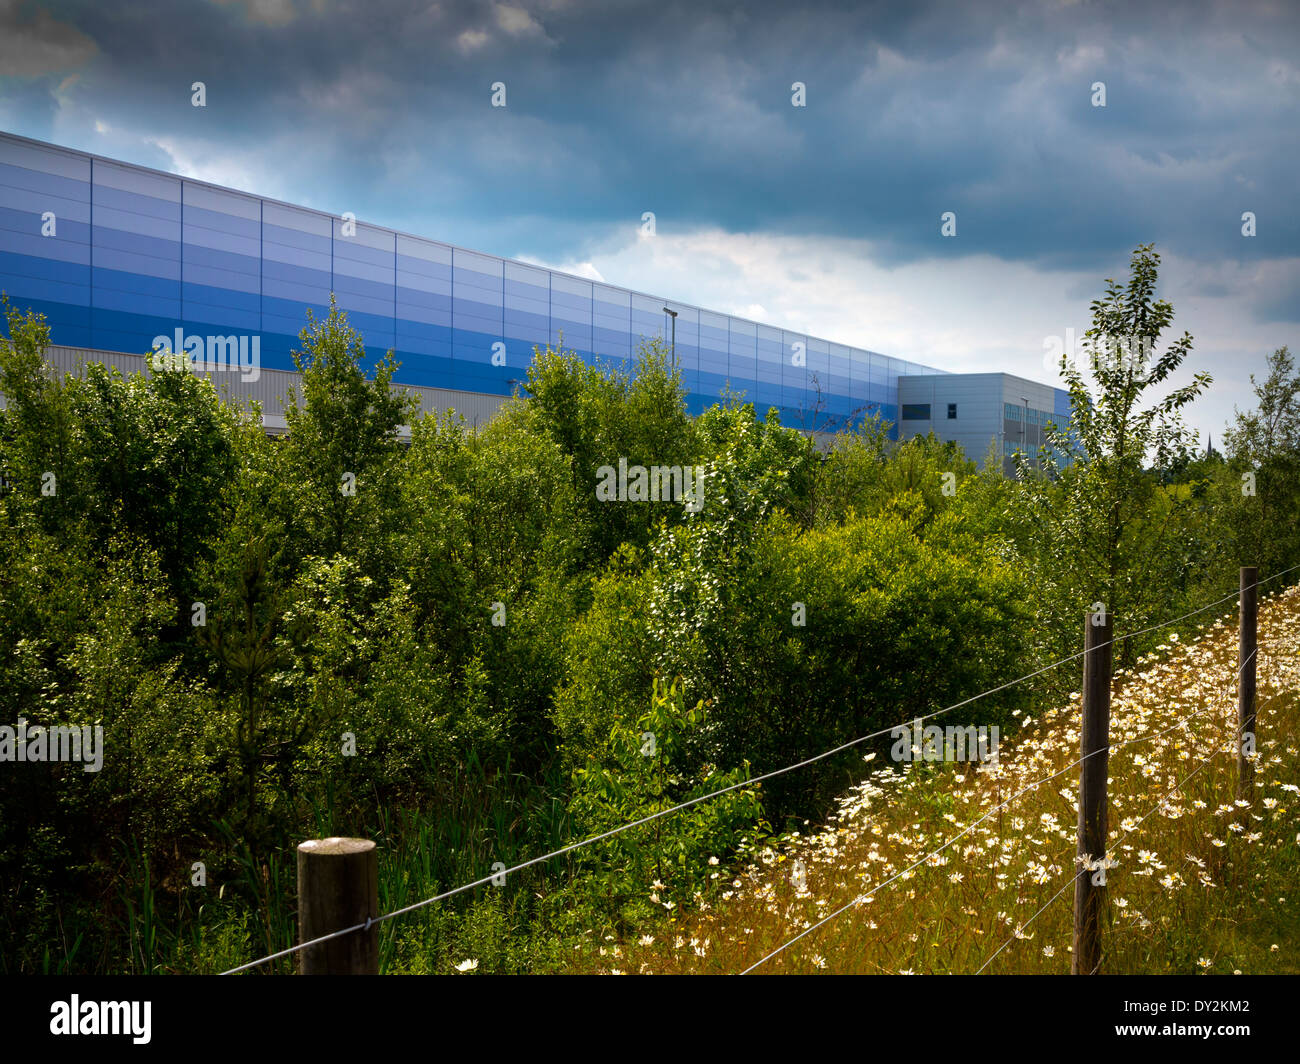 Exterior of Amazon UK warehouse in Rugeley Staffordshire England with stormy sky above and trees in foreground Stock Photo